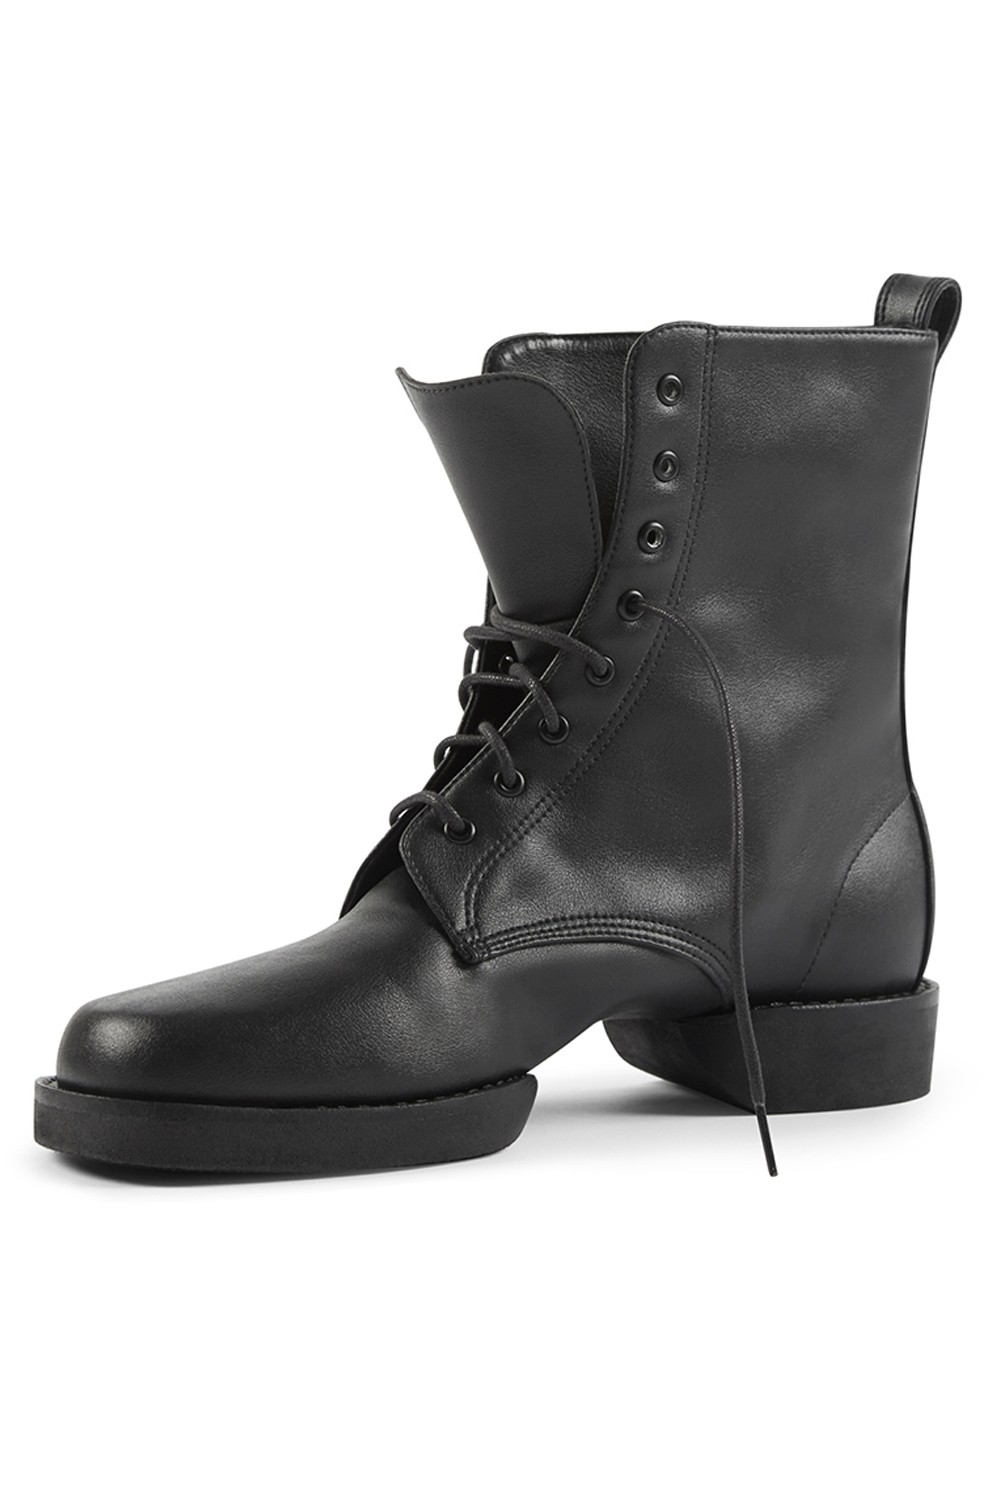 Military Split Sole Dance Shoes